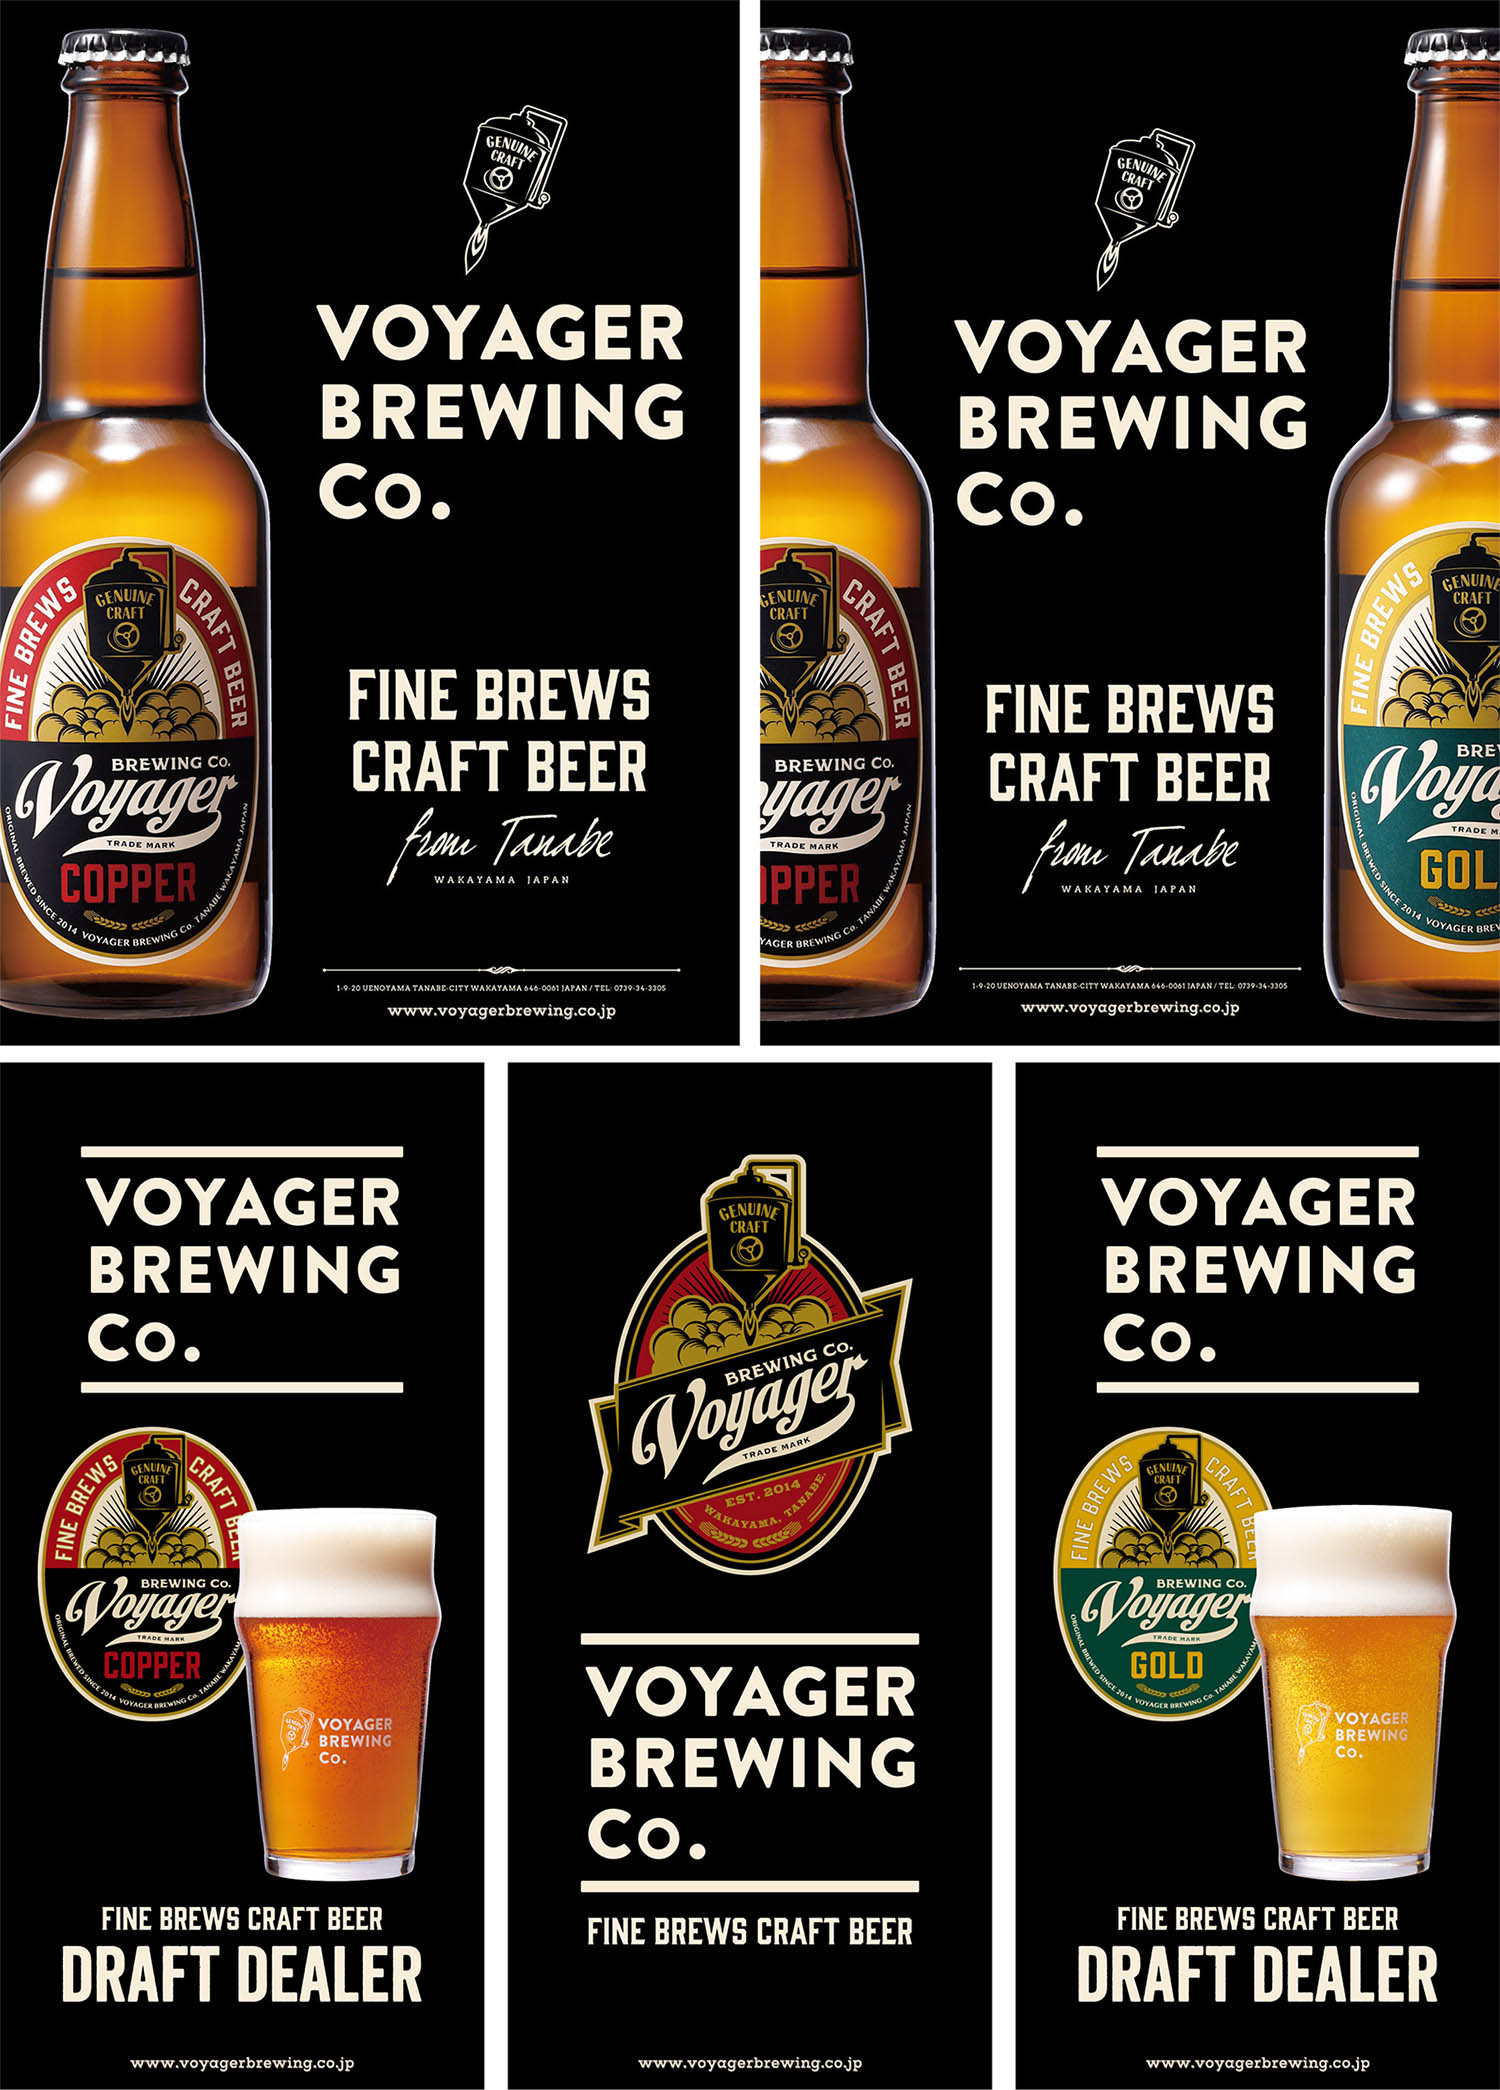 VOYAGER BREWING Co. POSTER